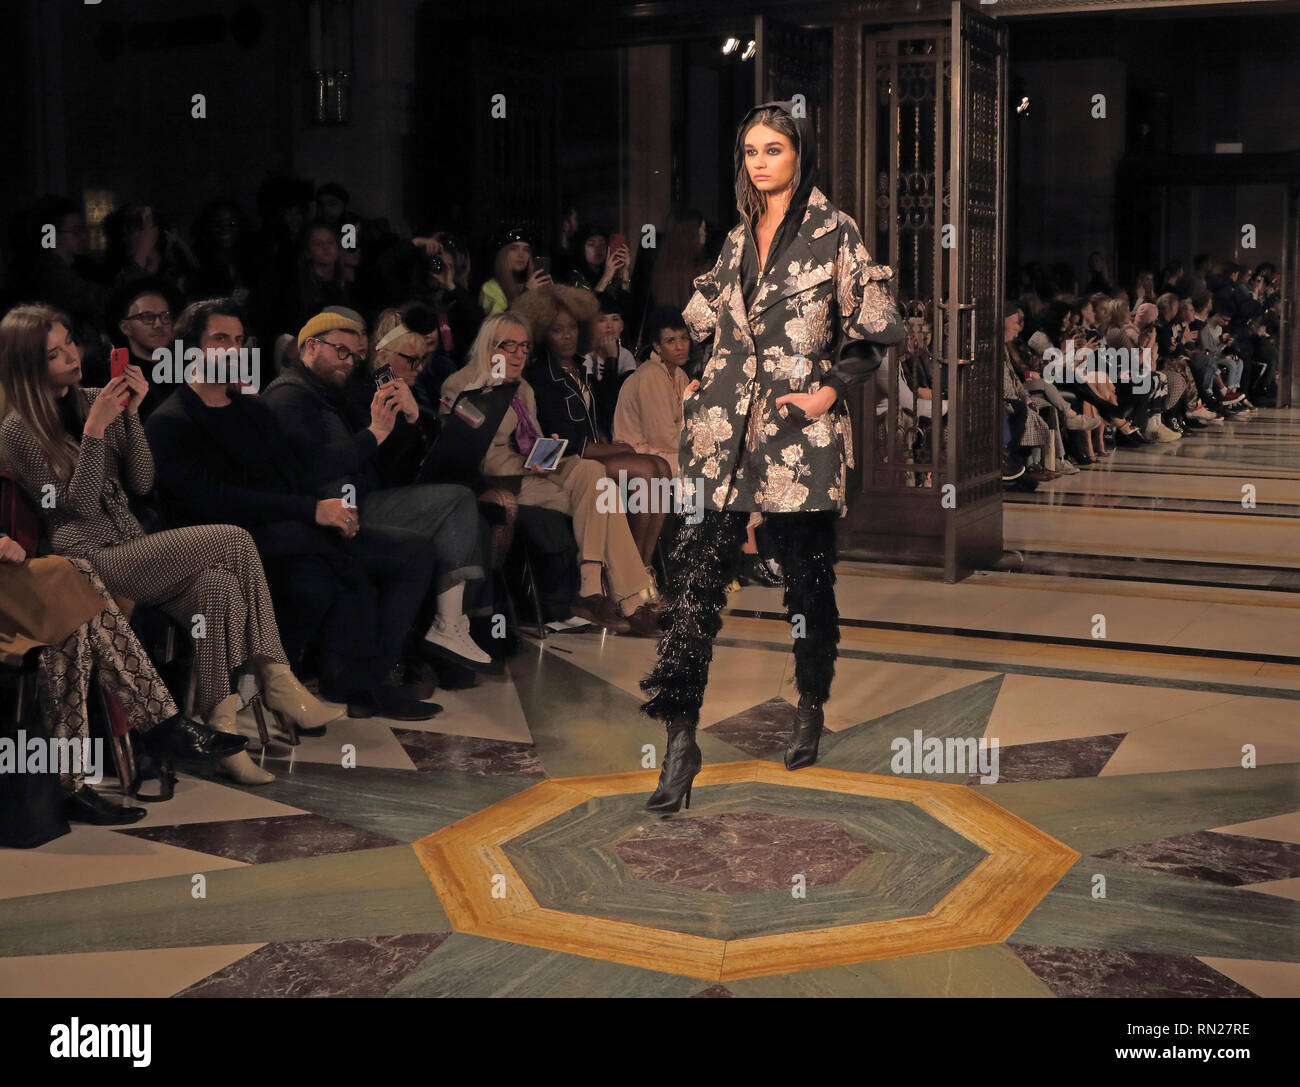 London Uk 16th Feb 2019 A Model Seen On The Rocky Star Catwalk Show Autumn Winter 2019 Indian Fashion Designer Presents His Latest Collection At Off Schedule London Fashion Week Show At The